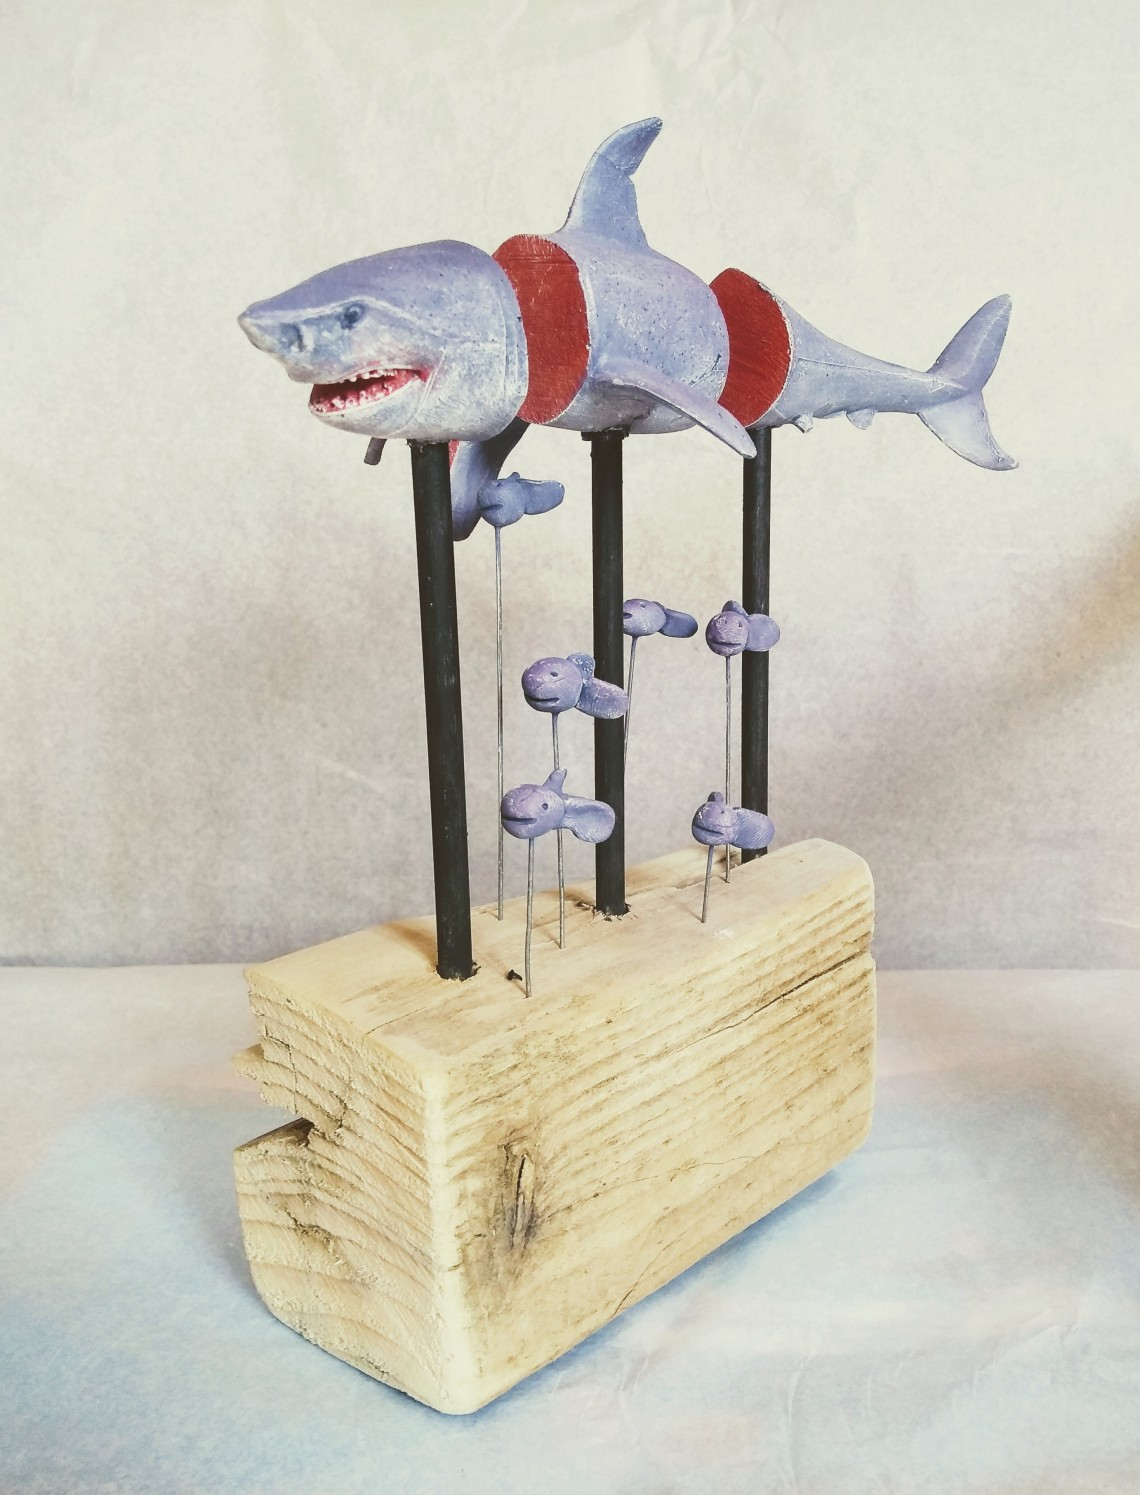 sharkboy-sculpture-number-3-2